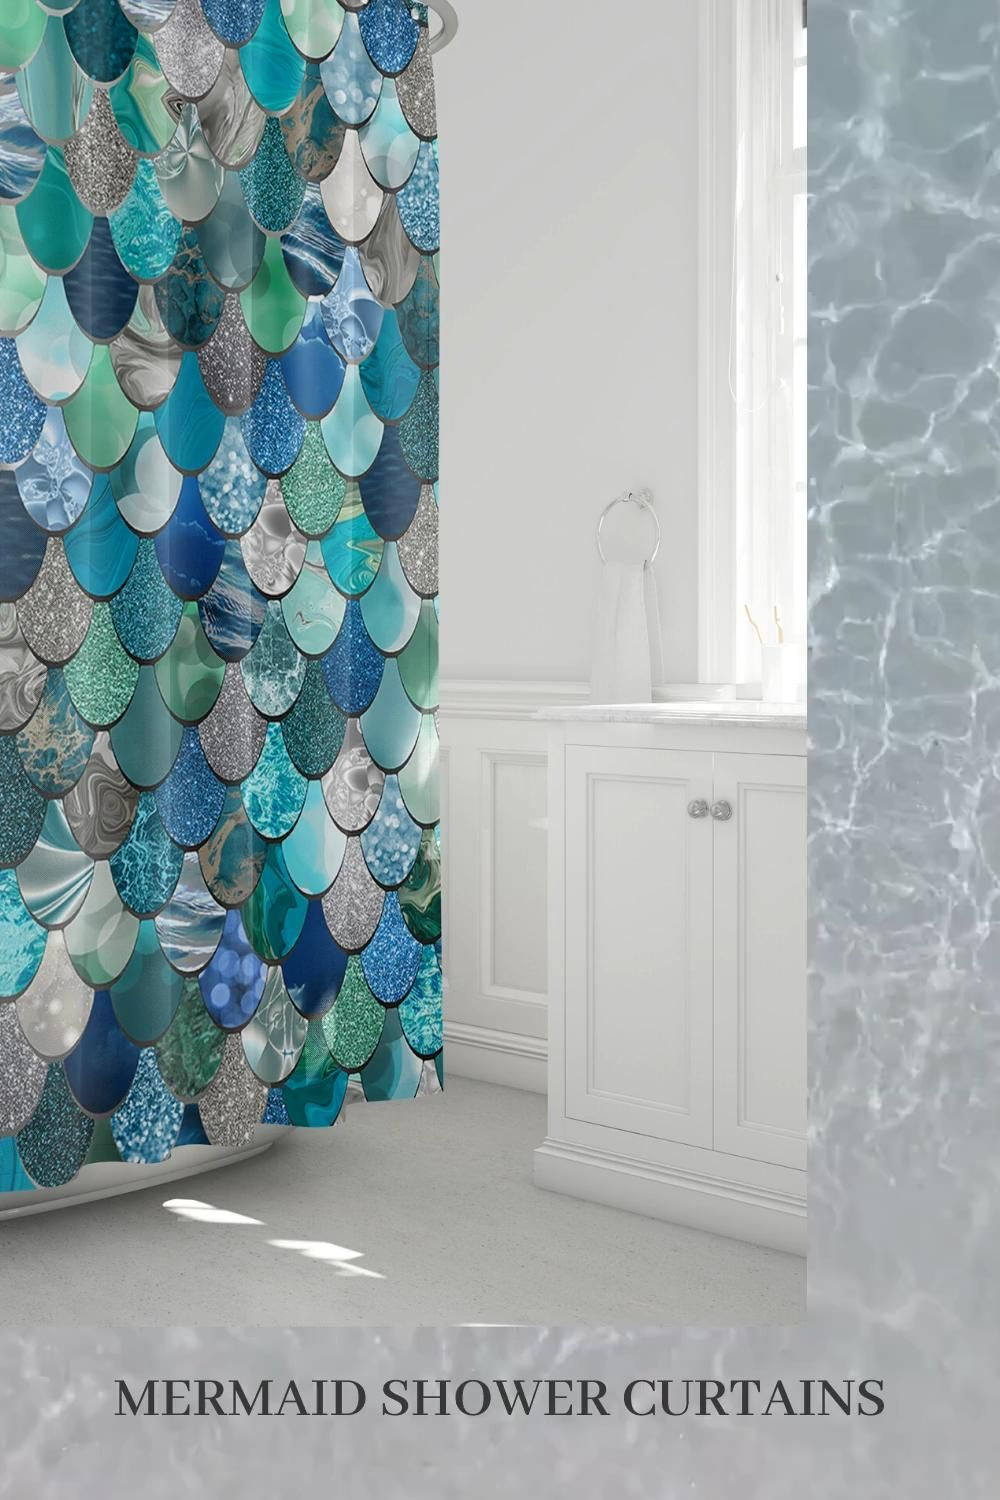 Pin On Mermaid Shower Curtains